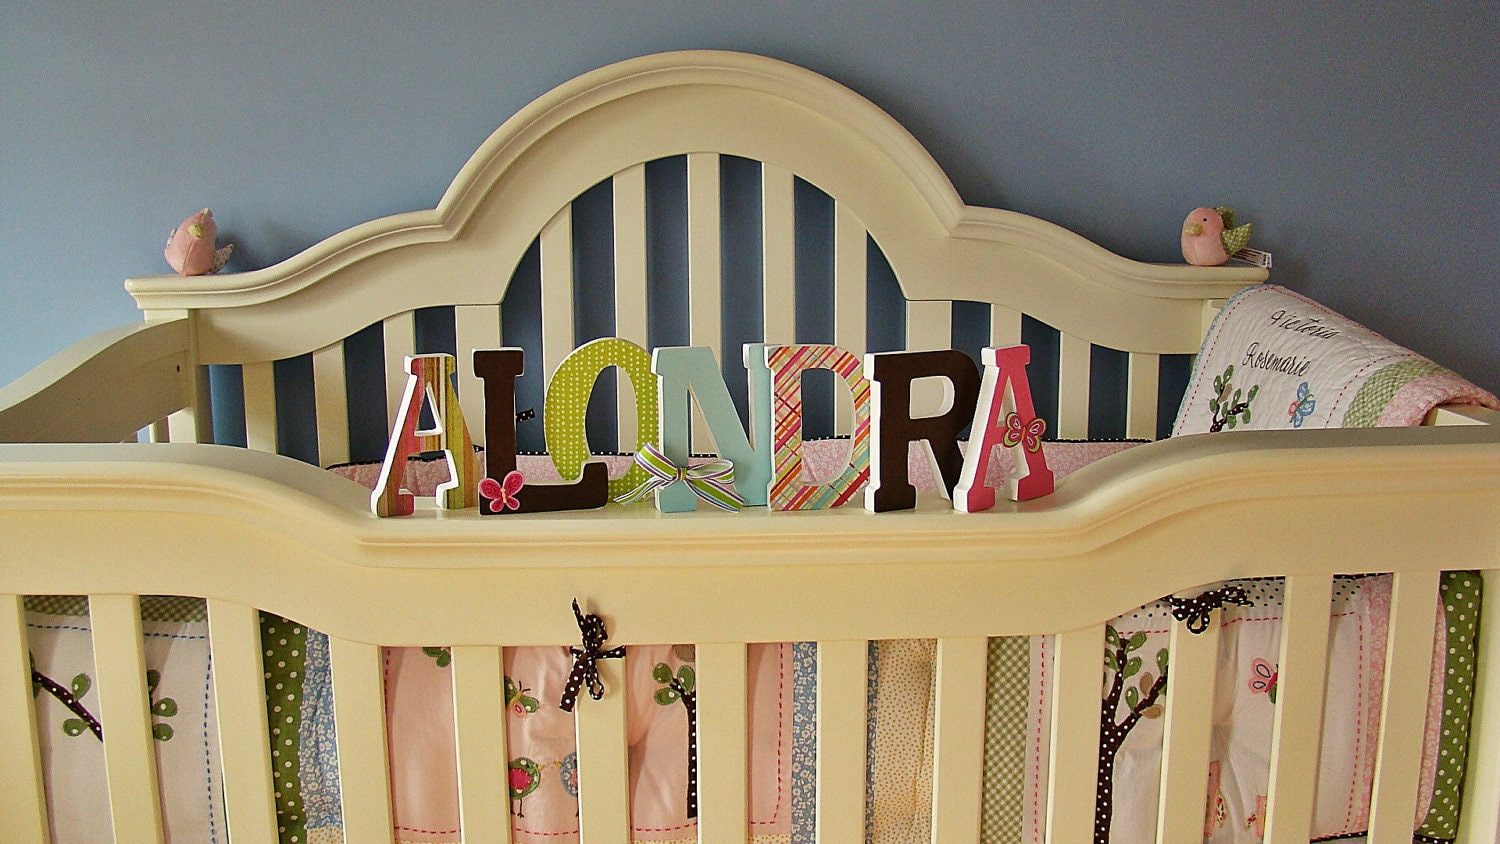 5 Inch Stand Alone Customized Wood Letters Nursery Home Decor Wedding